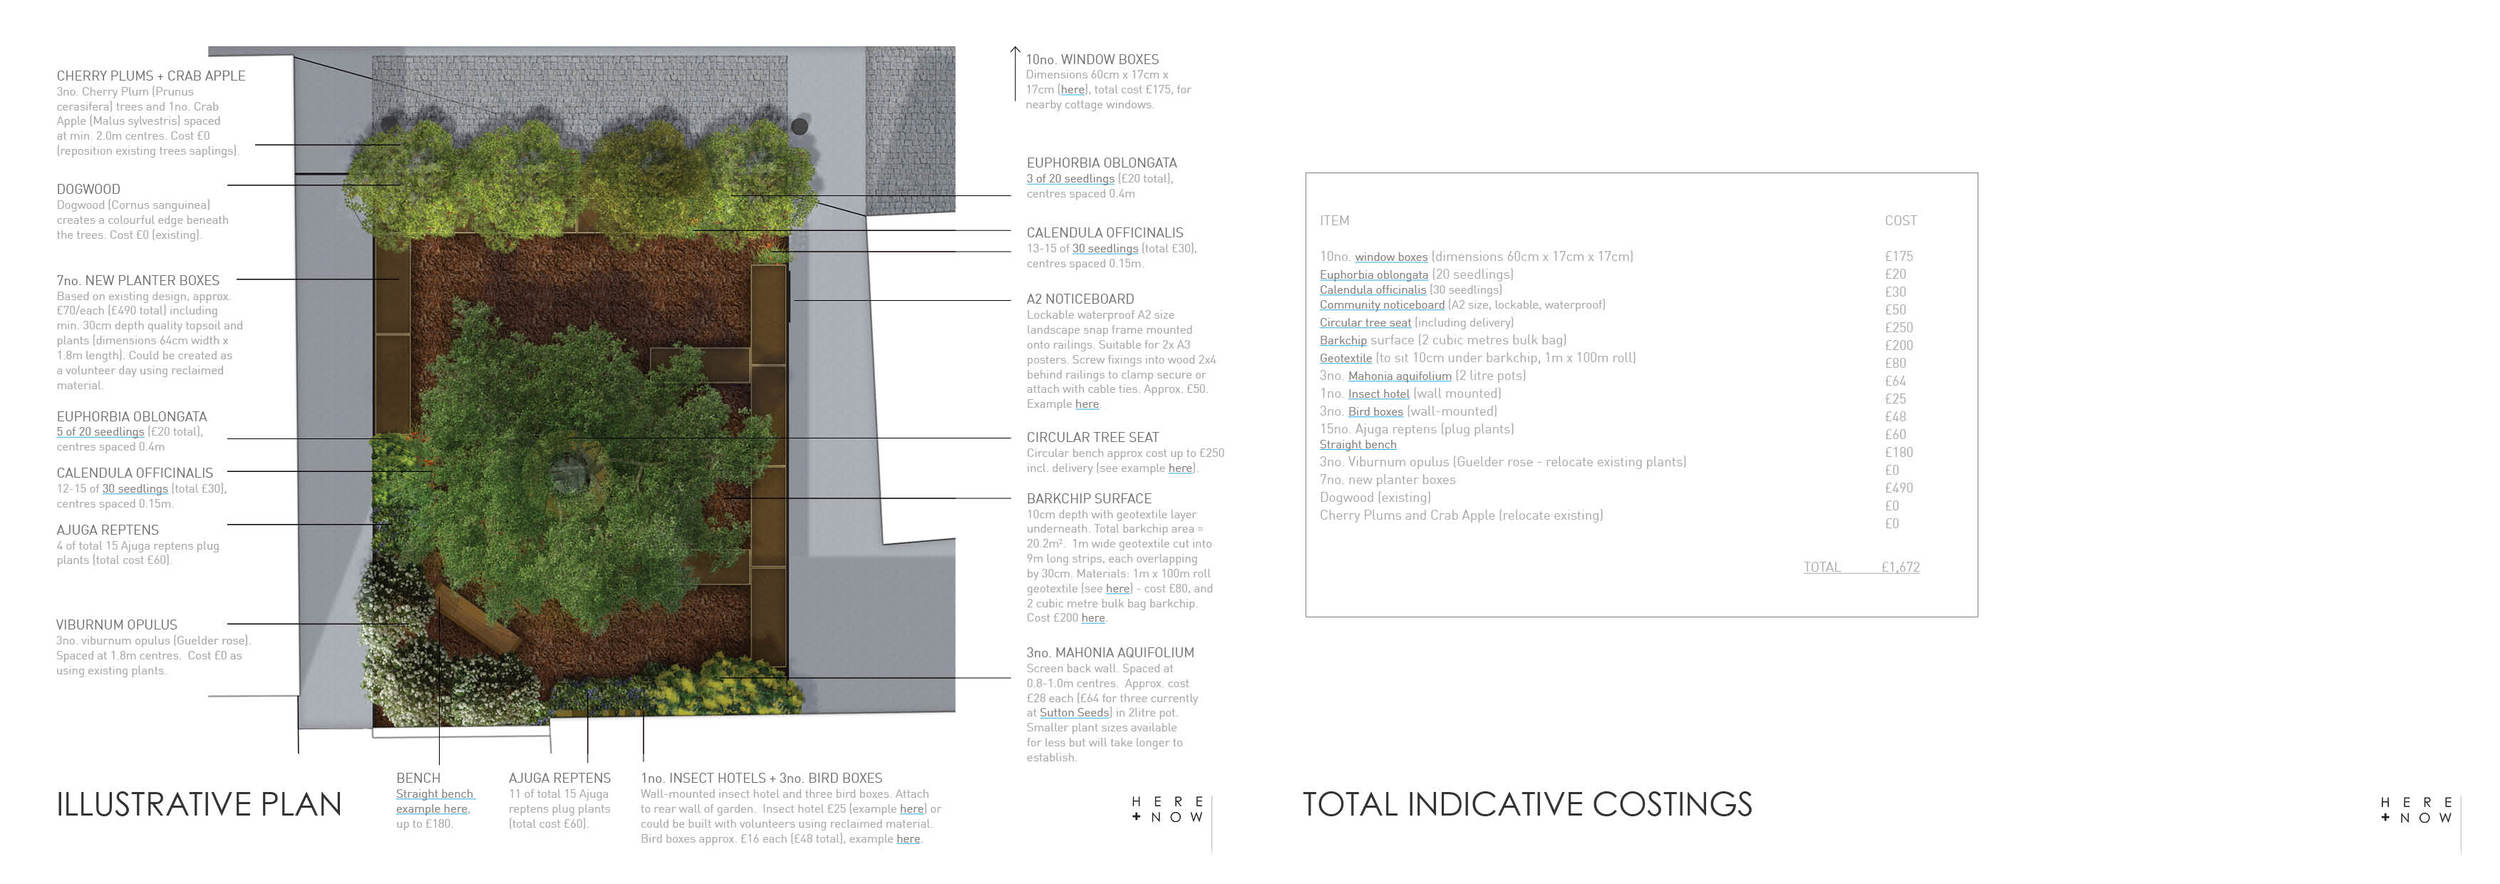 160407_HERE+NOW_Newhaven Community Garden_Proposed Layout lo res6.jpg